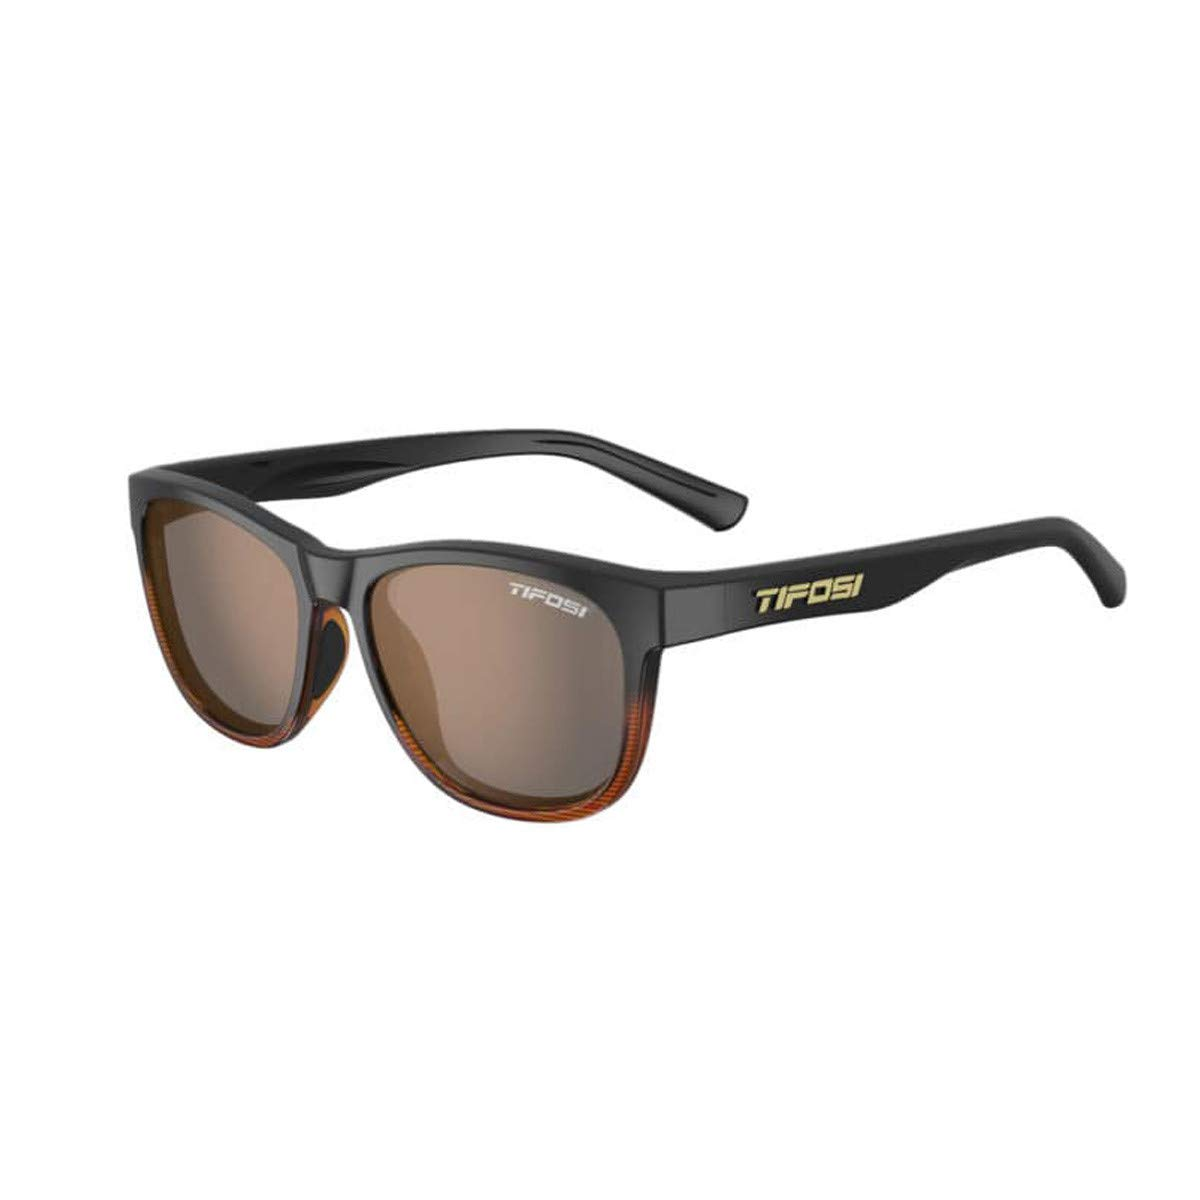 36af3764d22 Amazon.com   Tifosi Swank Sunglasses   Sports   Outdoors